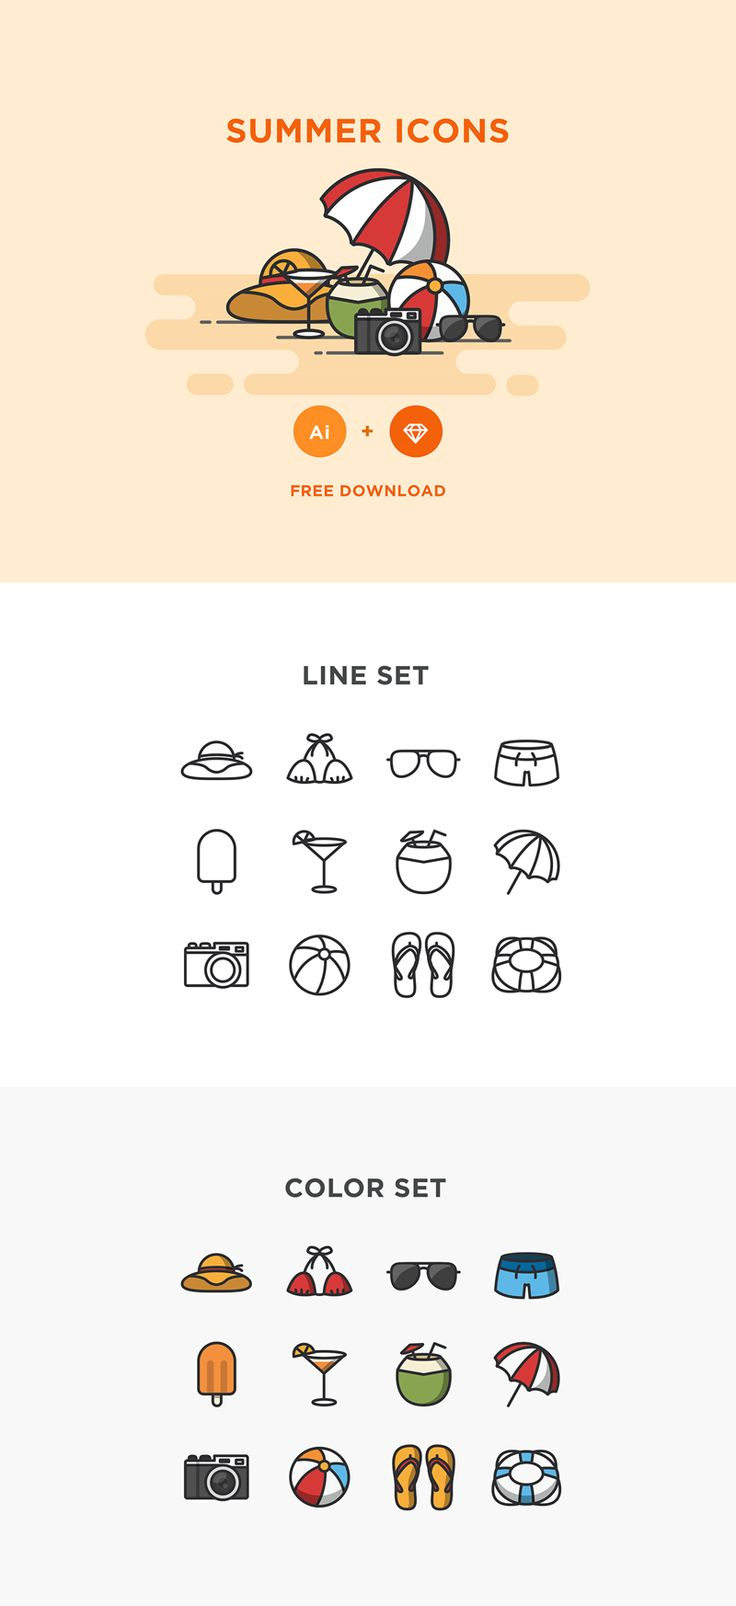 Free Summer Icons The 162 best Vectors